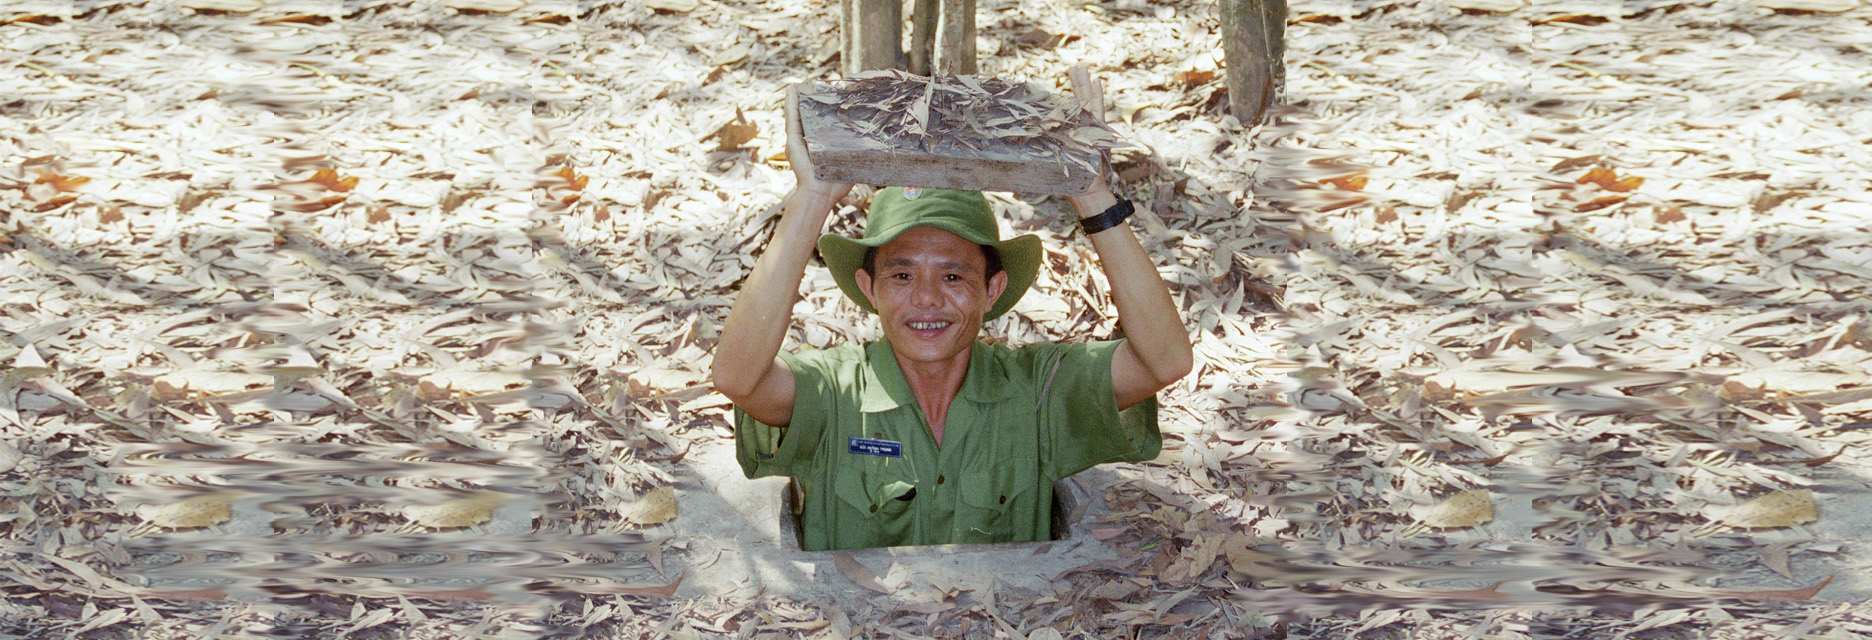 Day Tour from Ho Chi Minh: Cu Chi Tunnels Private Tour